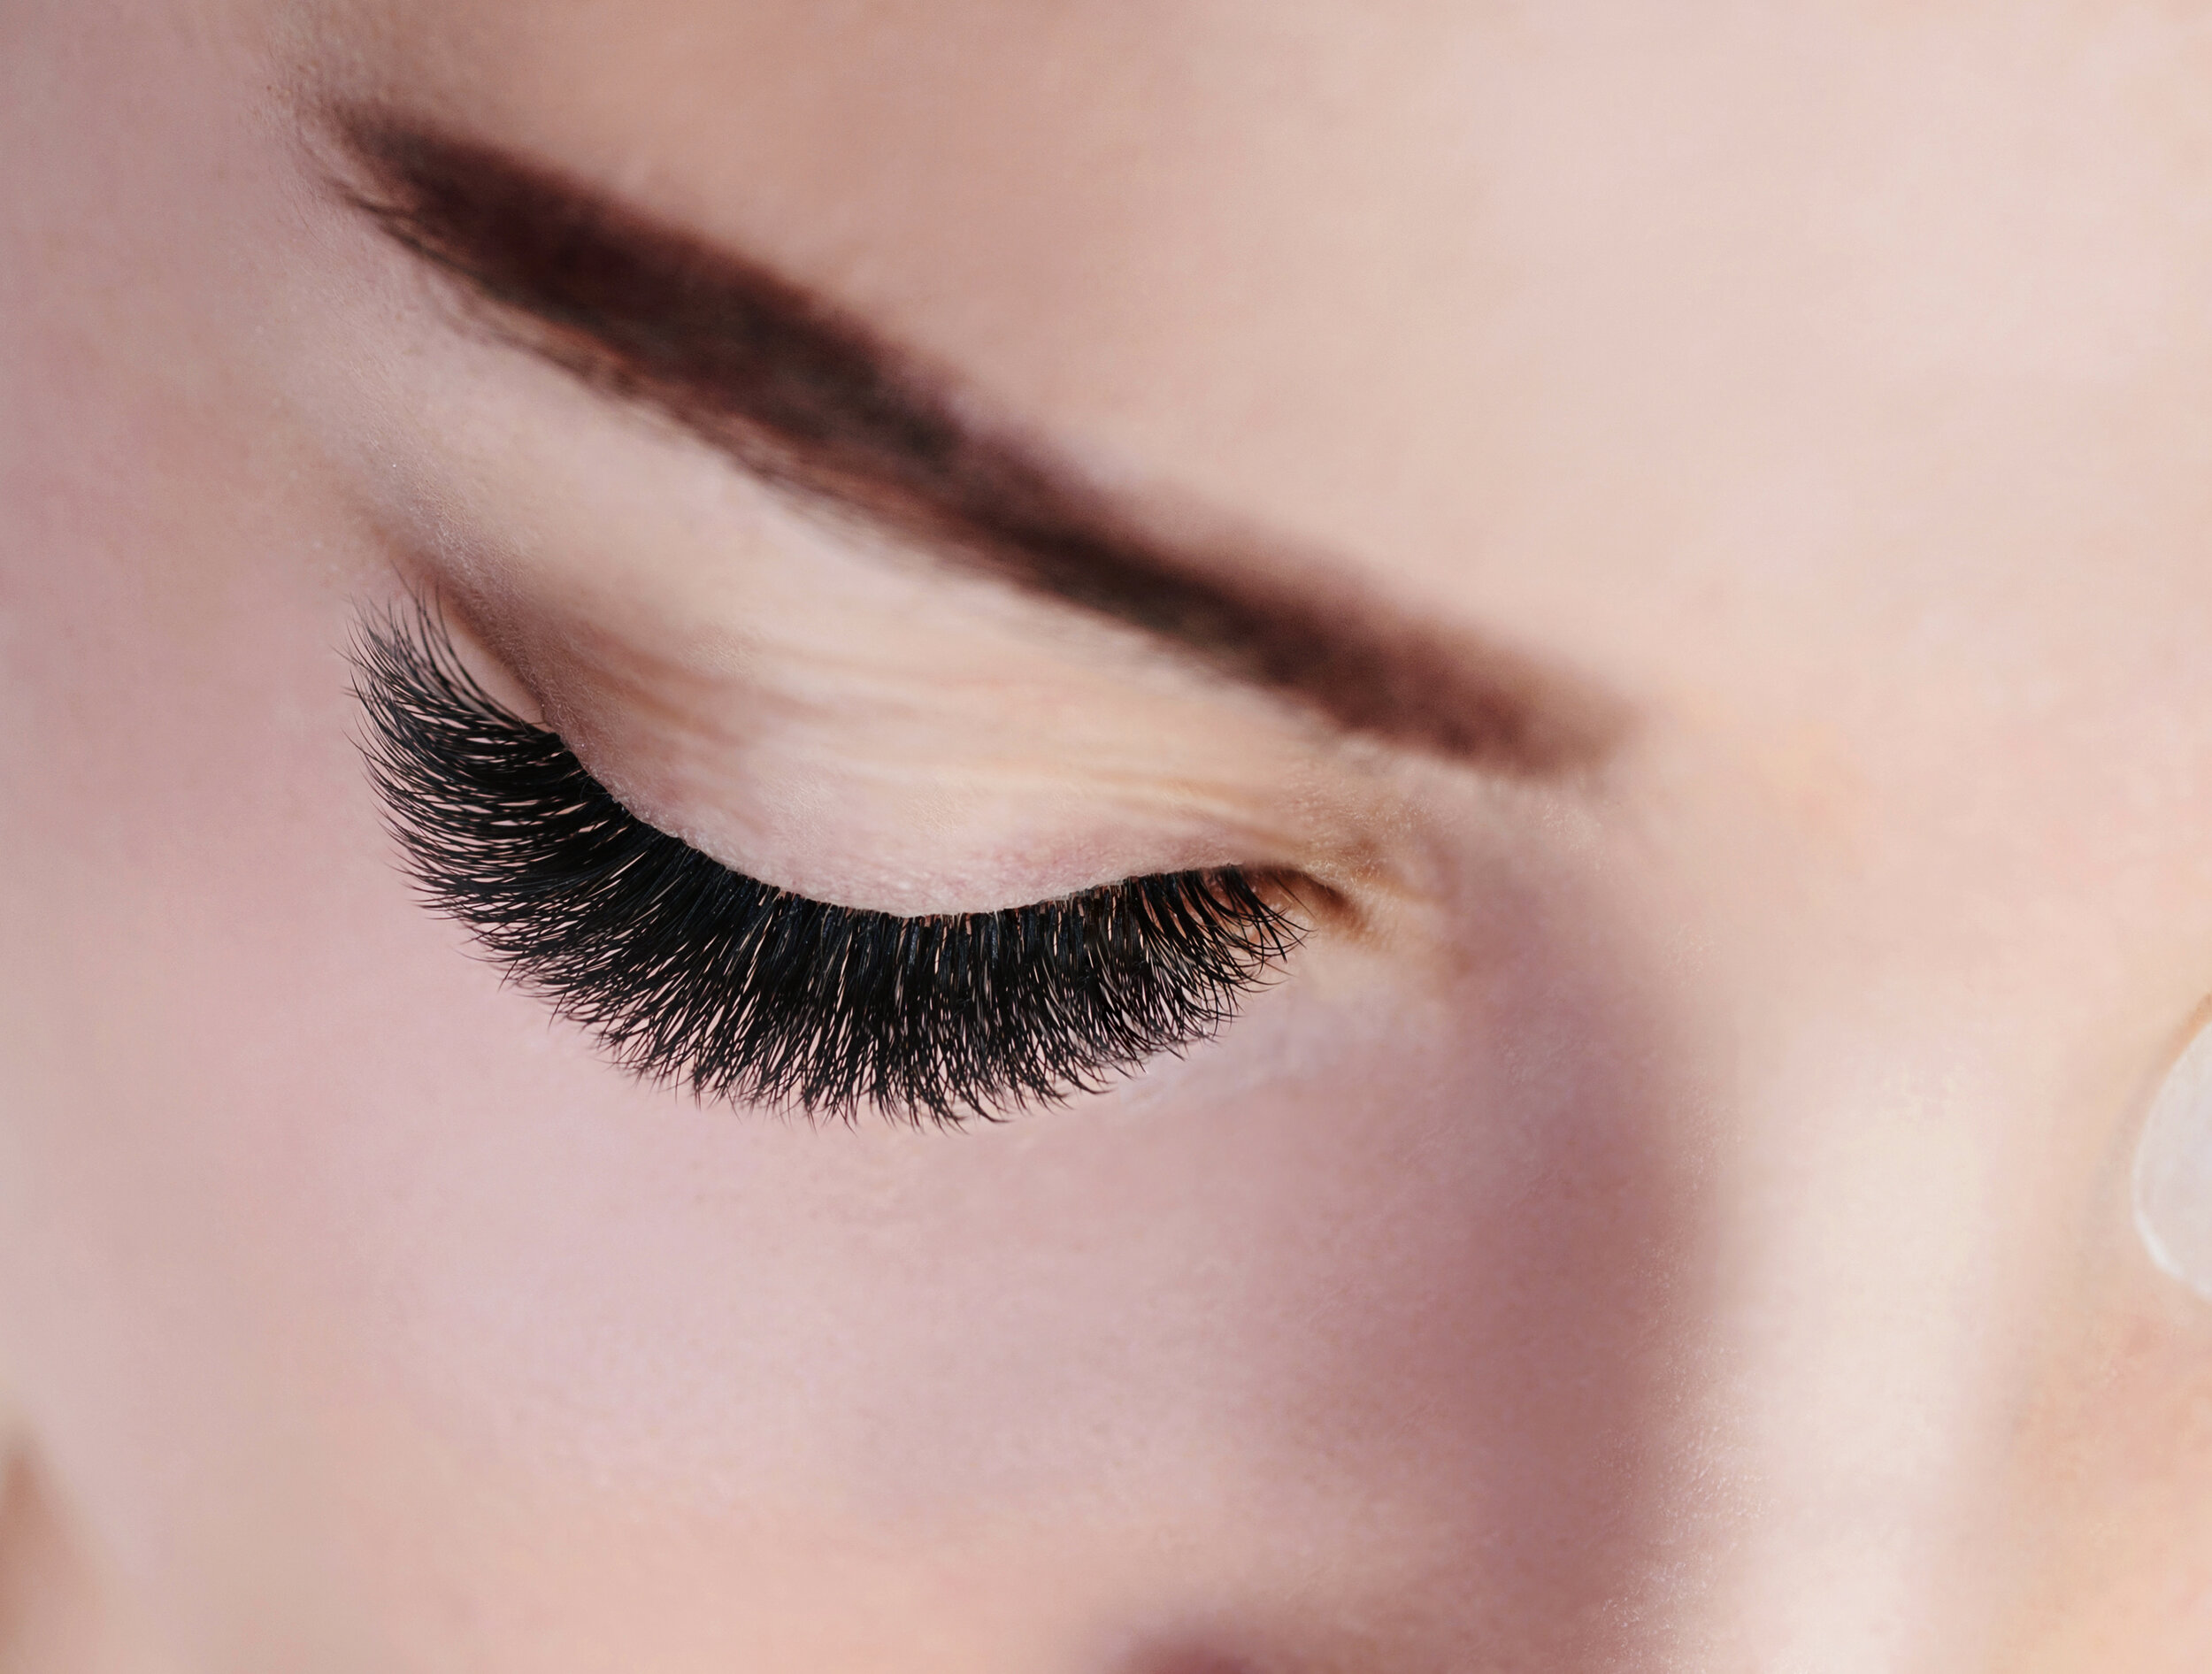 DIVAVolume Lash Extensions - The ultimate volume, definition and curl. Our most dramatic look ideal for those want on over the top set of lashes. Be bold, dark and be the Diva.Approximately 400-500 lashes per eye.250Book Online Now